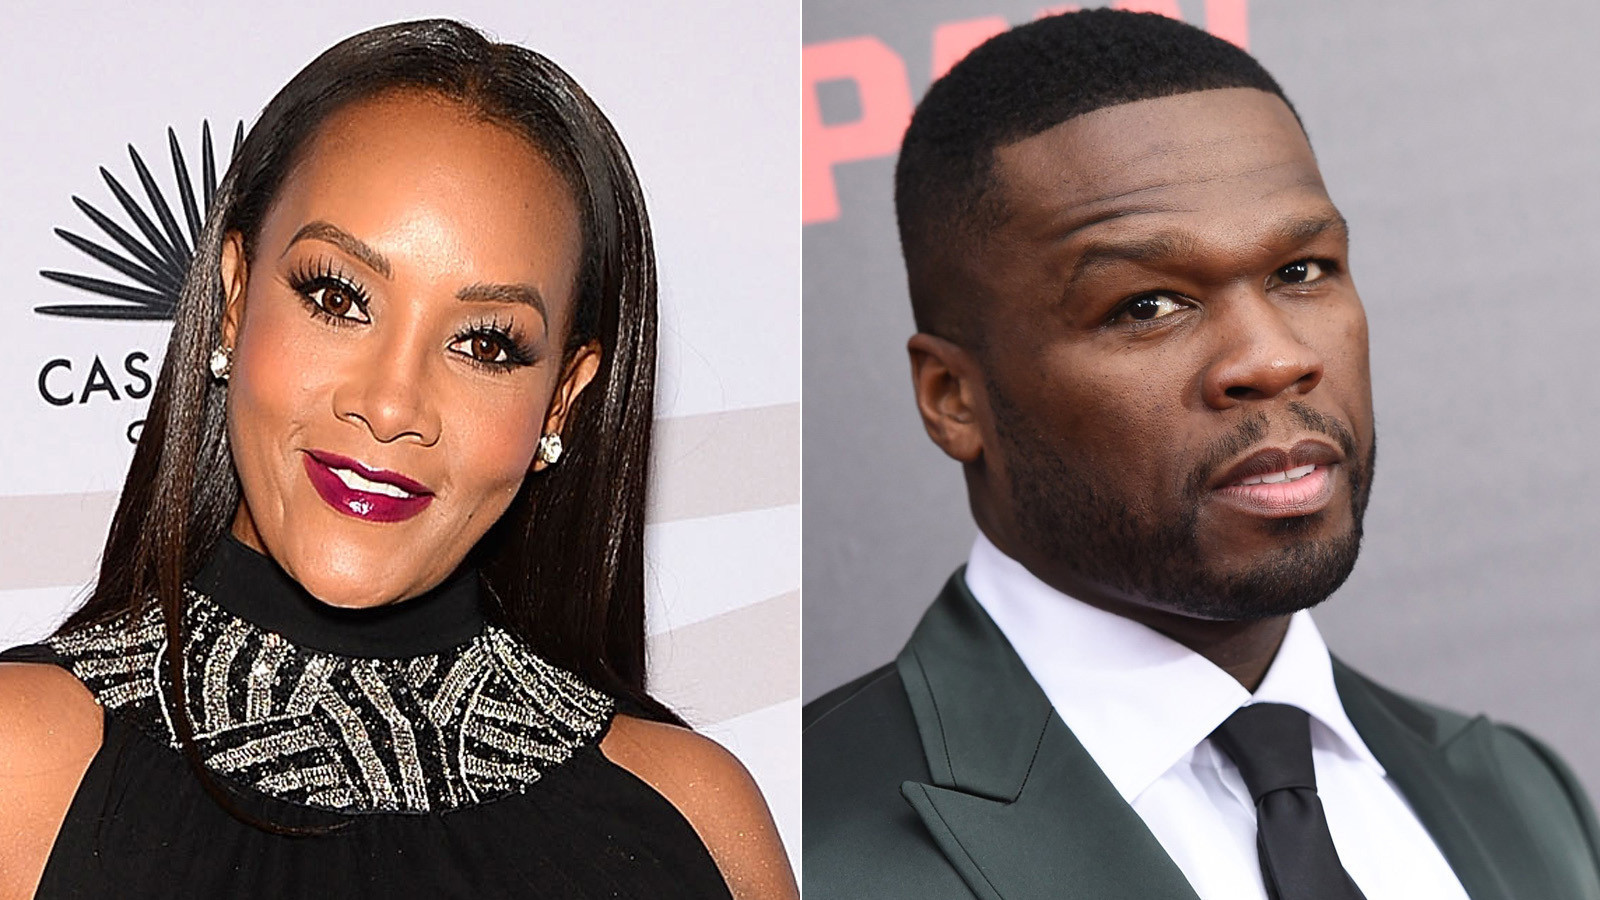 Vivica Fox insults 50 Cent with 'gay comment', and he